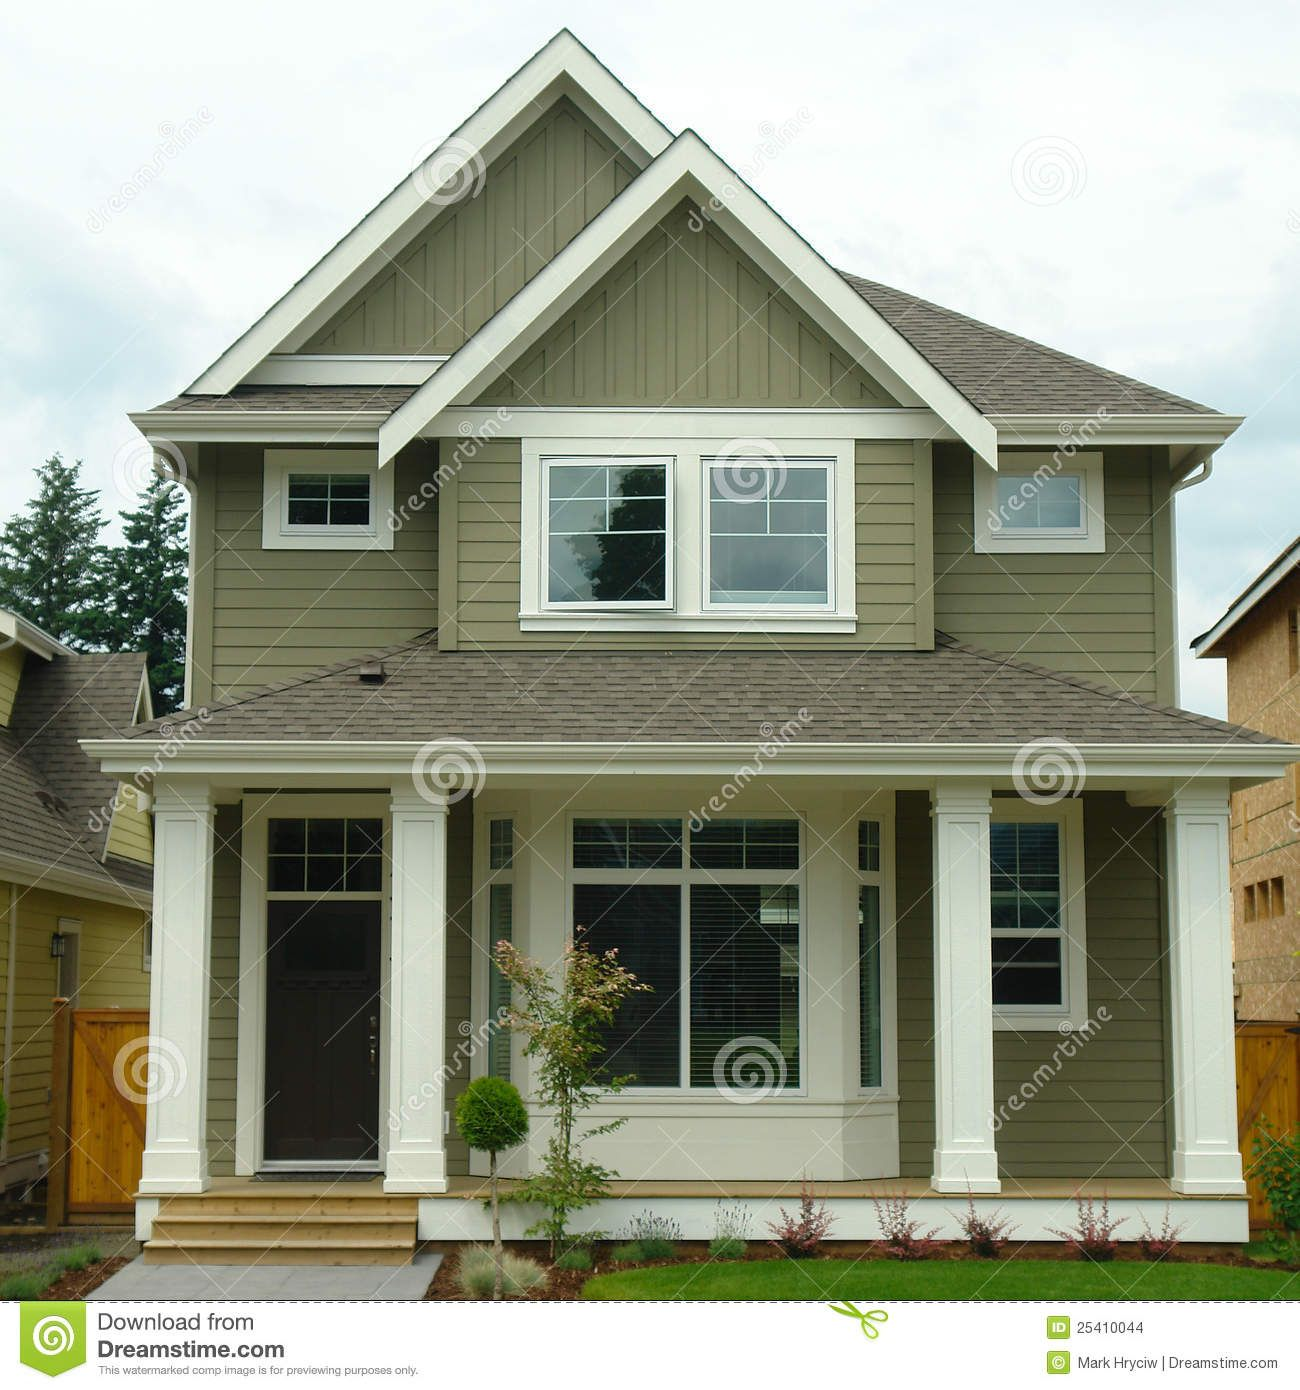 Exterior home colors green - Forest Green Exterior House Color New Home House Exterior 25410044